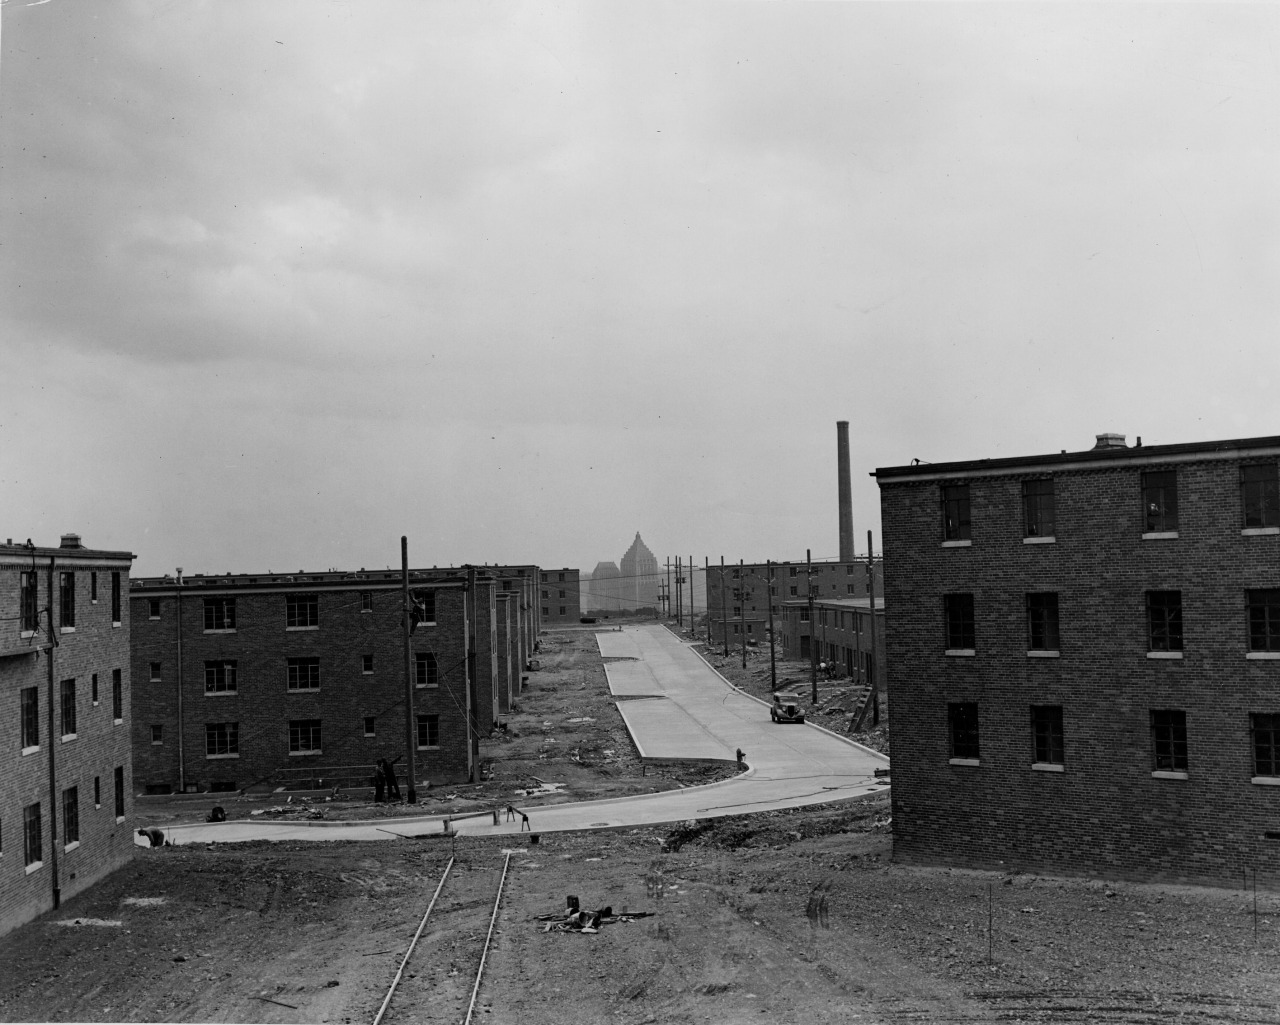 1940: A view of Bedford Dwellings with Downtown Pittsburgh and the Gulf Tower in the background. (Credit: The Pittsburgh Press)